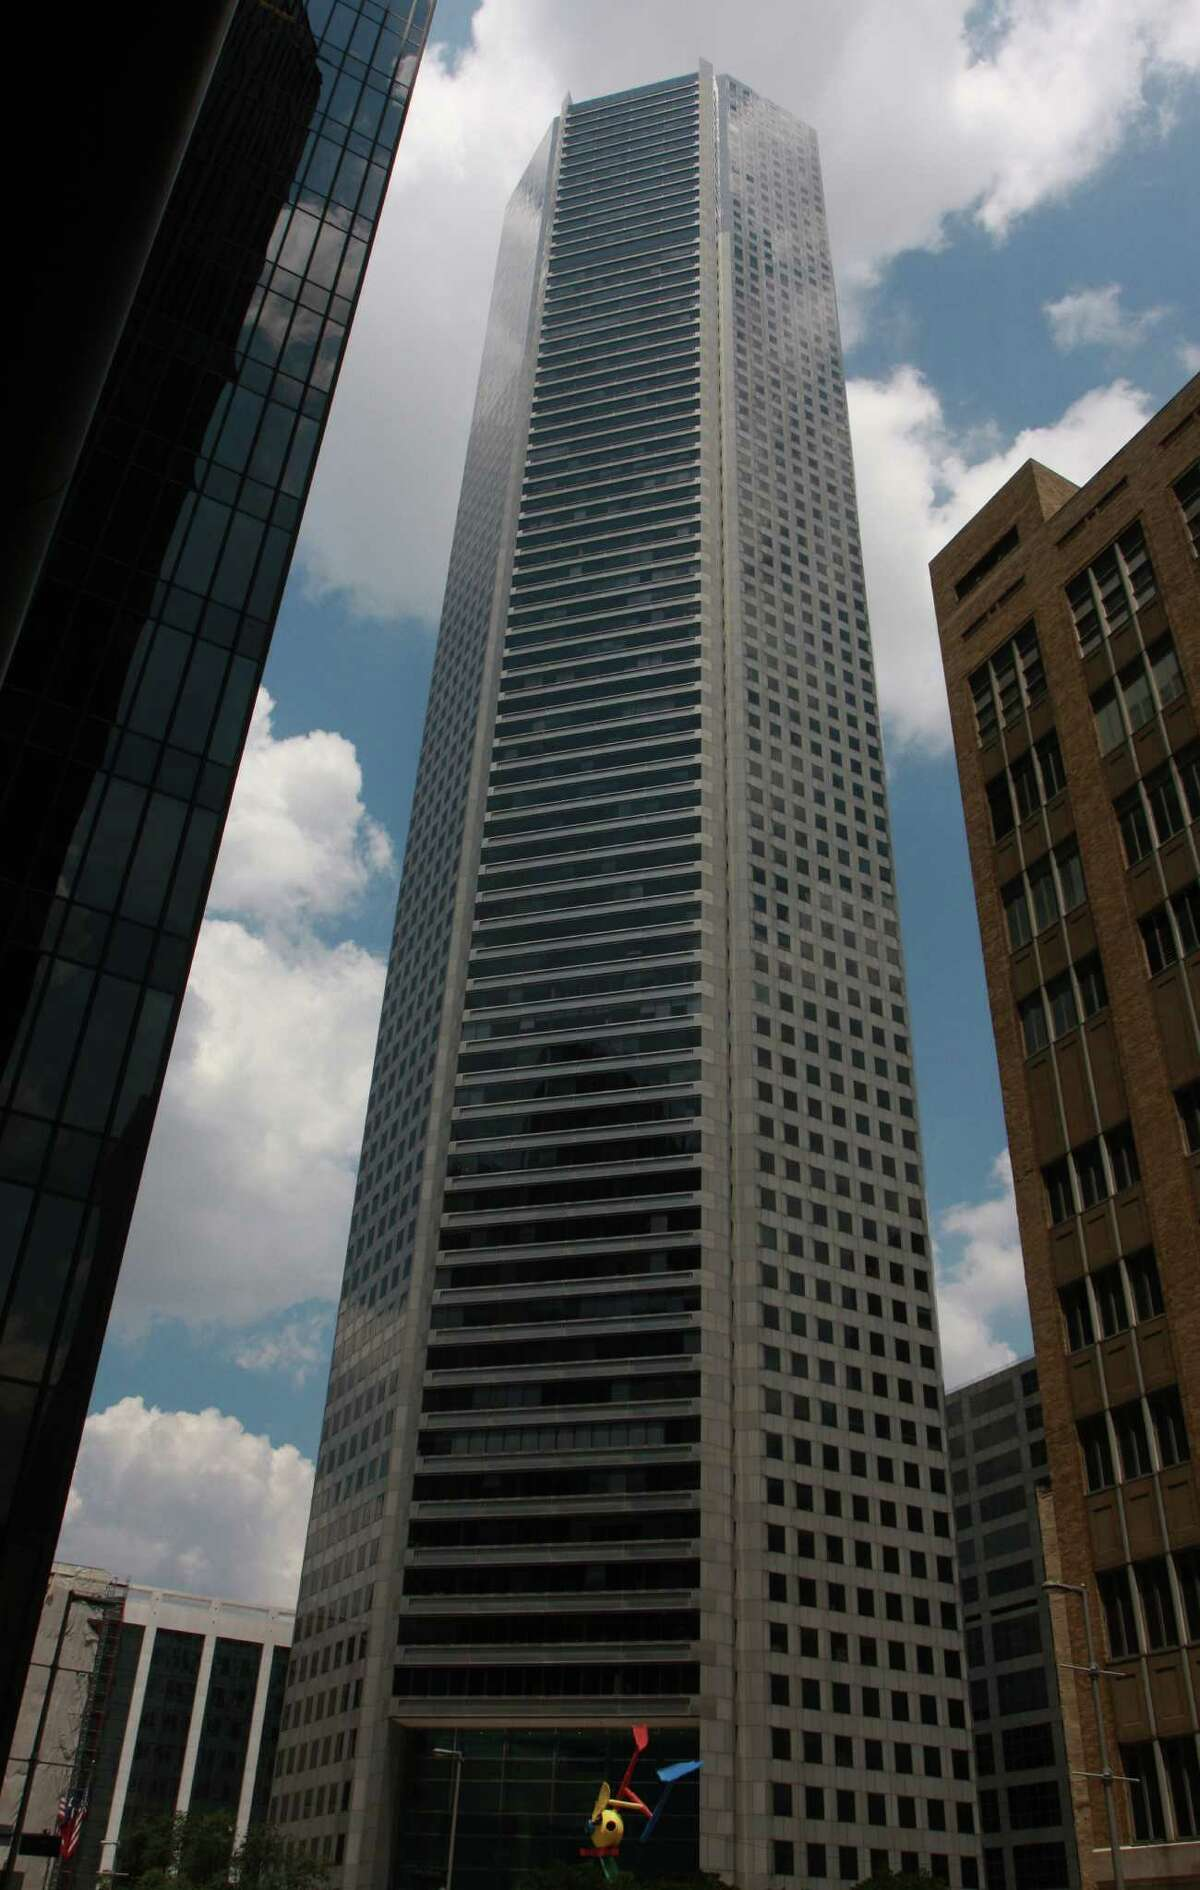 At 1,002 feet, Houston's JP Morgan Chase Tower is the tallest skyscraper in Texas.